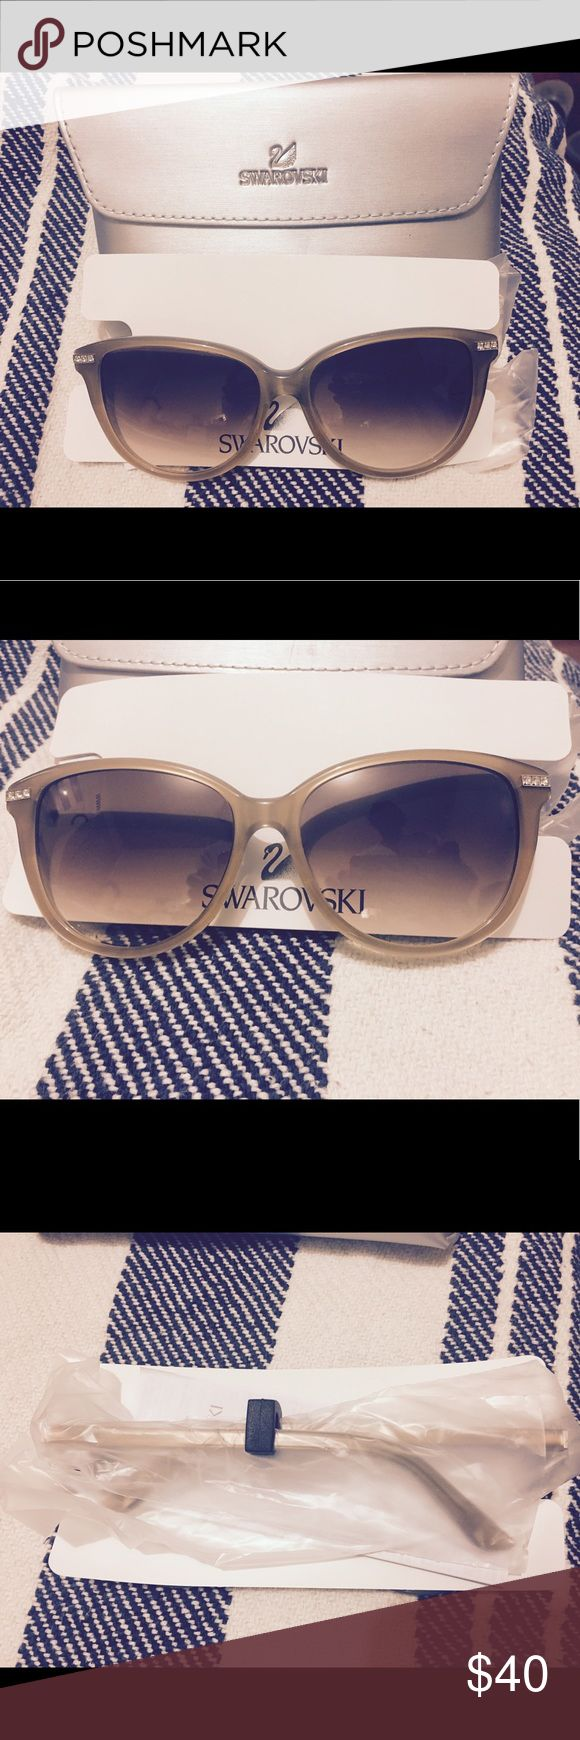 Swarovski sunglasses Swarovski sunglasses with 3 crystals on each side of the frame! New, still in packaging! Swarovski Accessories Sunglasses